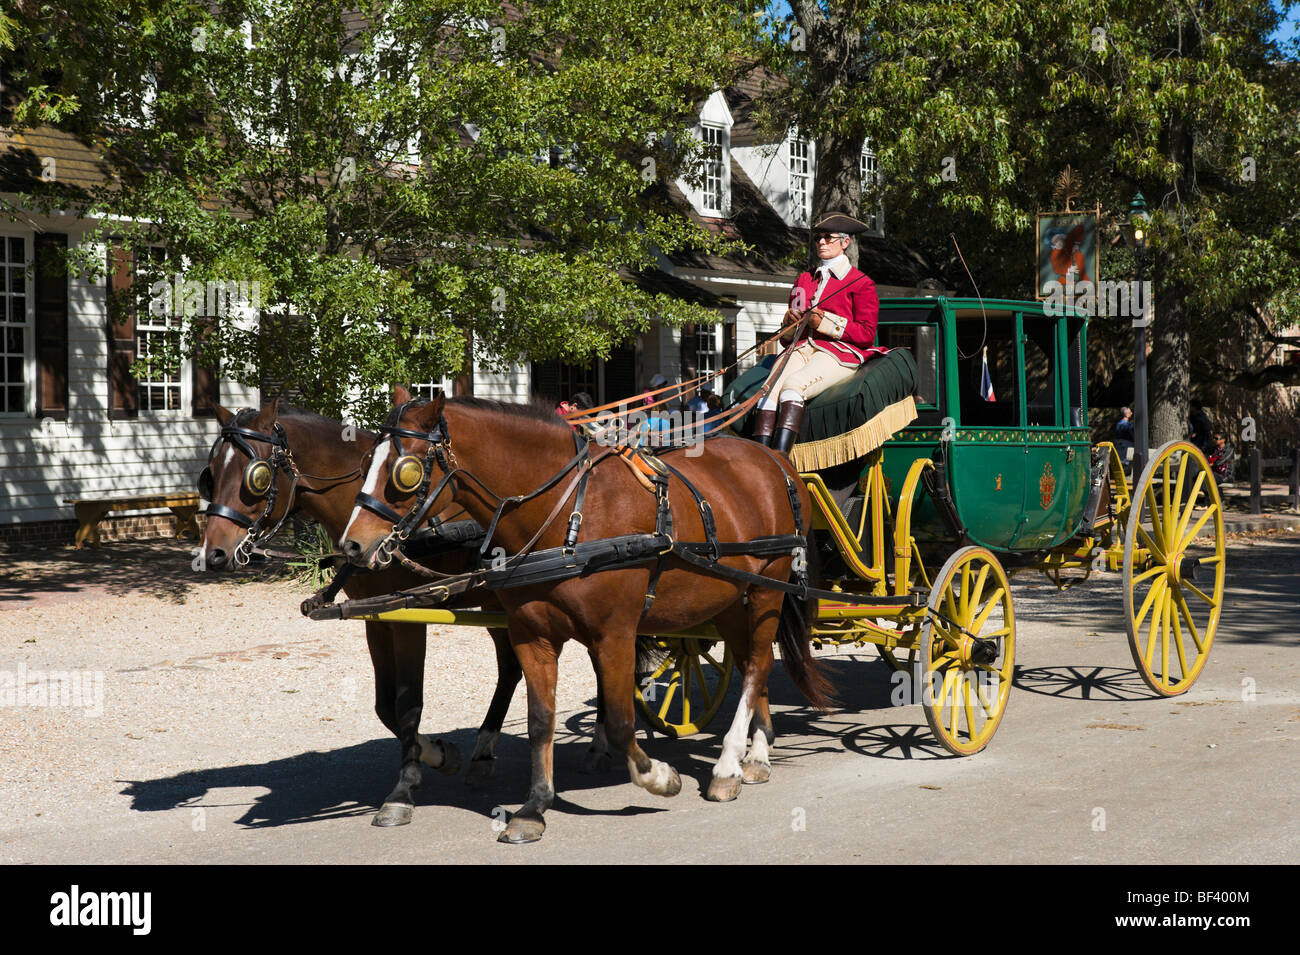 Horses and Carriage on Duke of Gloucester Street (the main street), Colonial Williamsburg,Virginia, USA - Stock Image